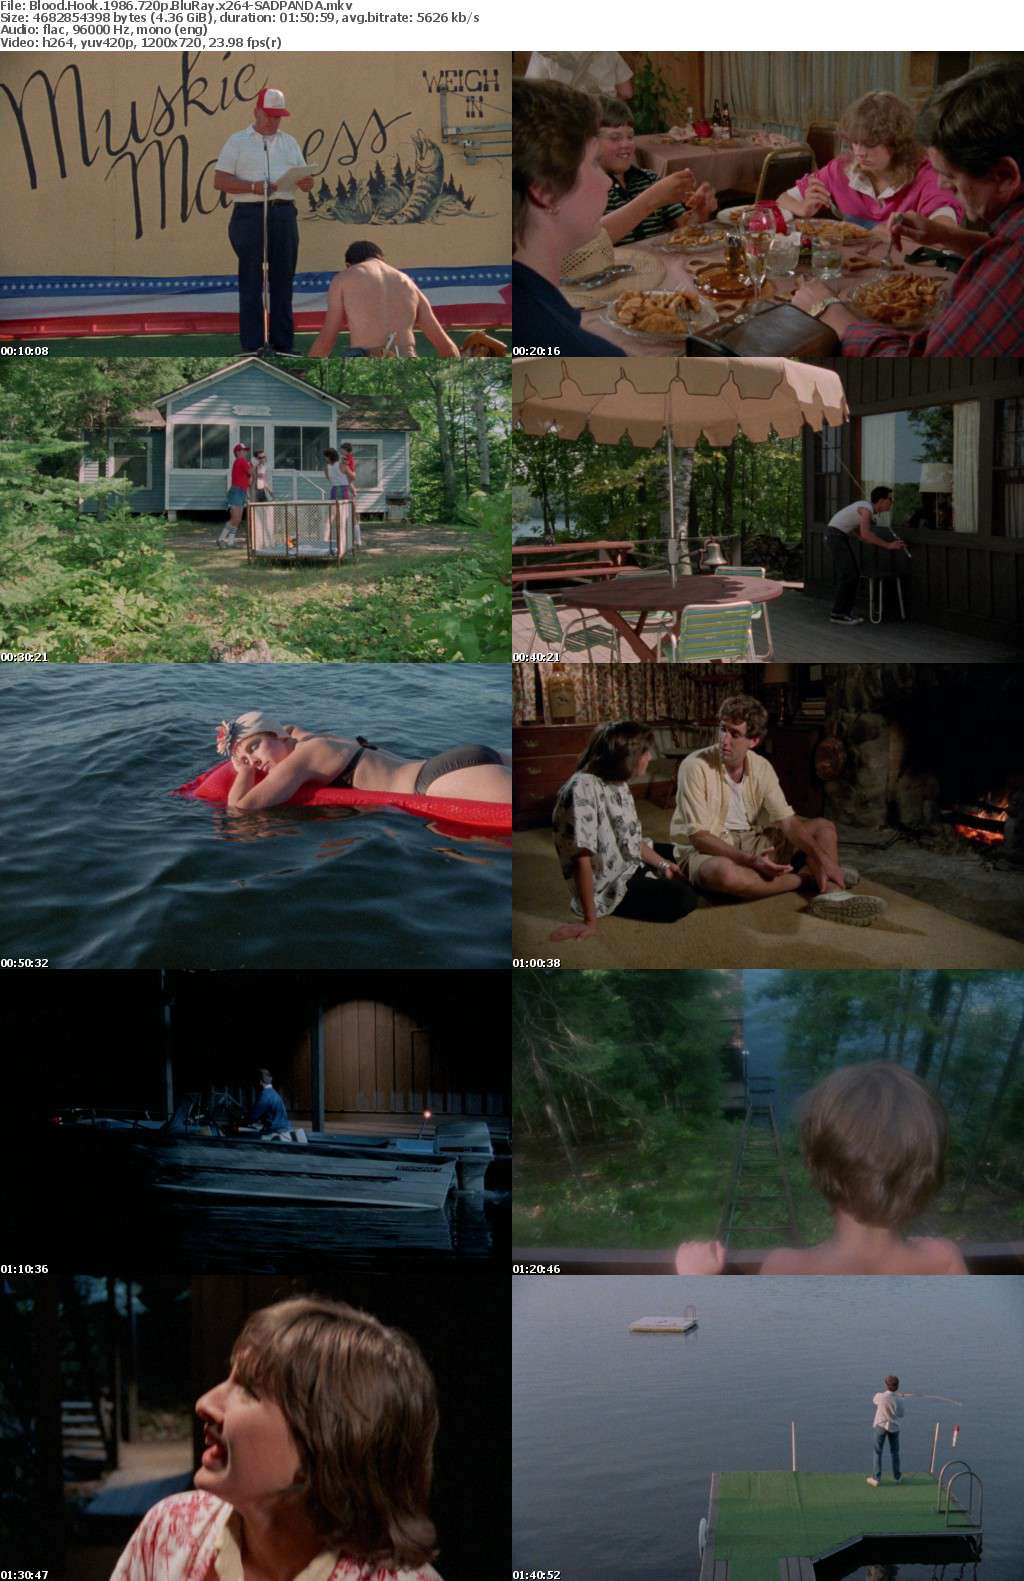 Blood Hook 1986 720p BluRay x264-SADPANDA